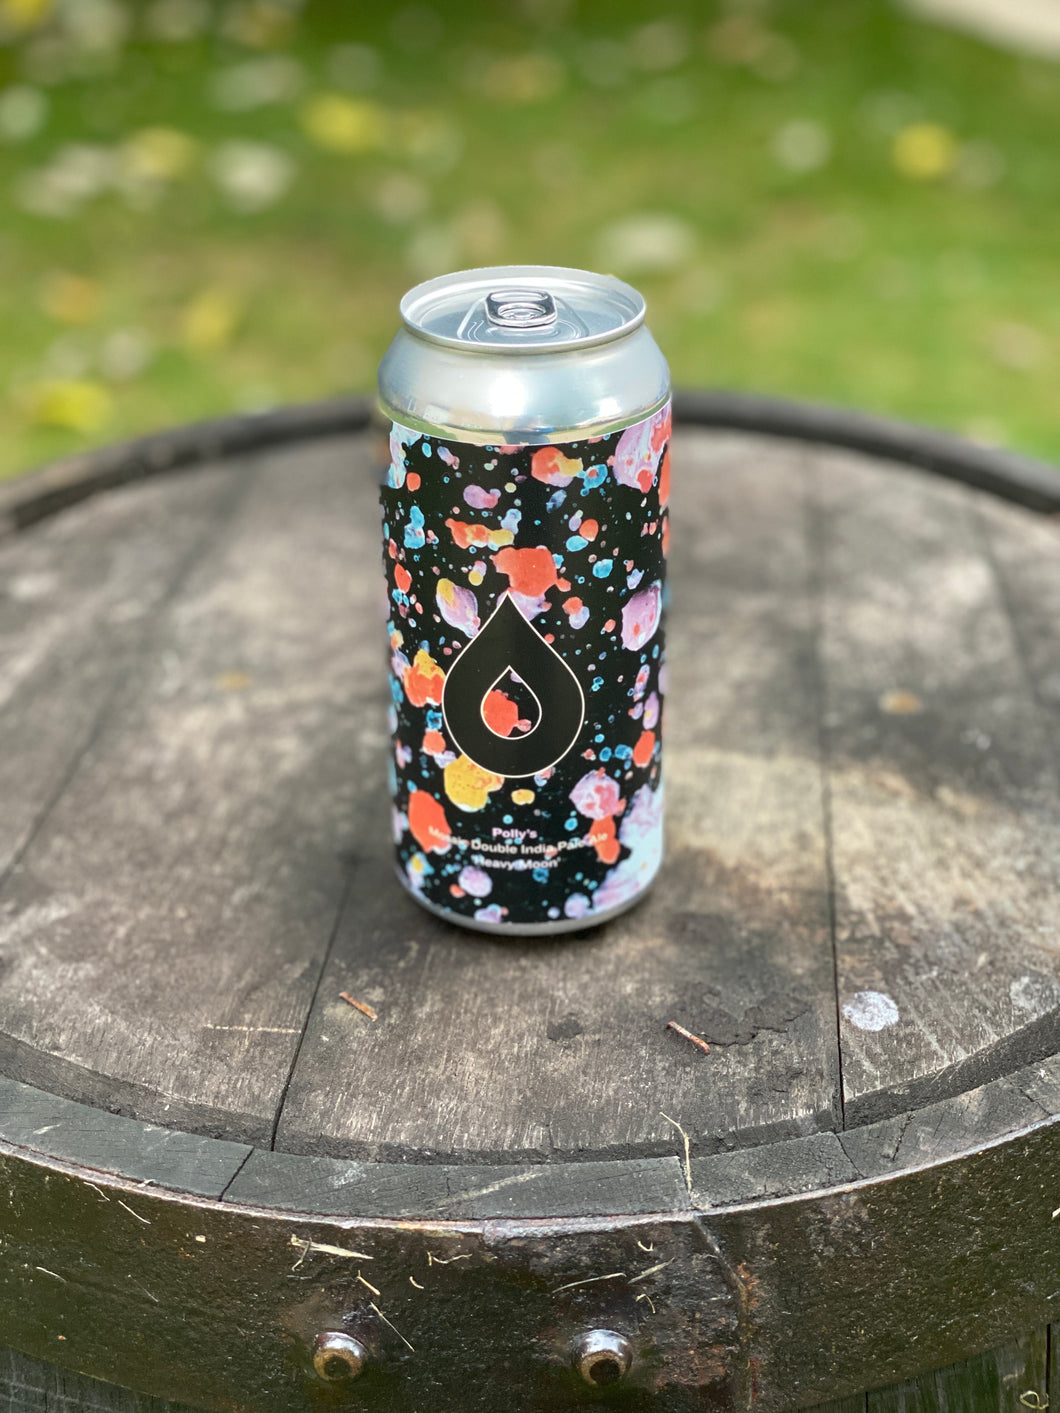 Pollys - Heavy Moon - 8.2% DIPA 440ml can